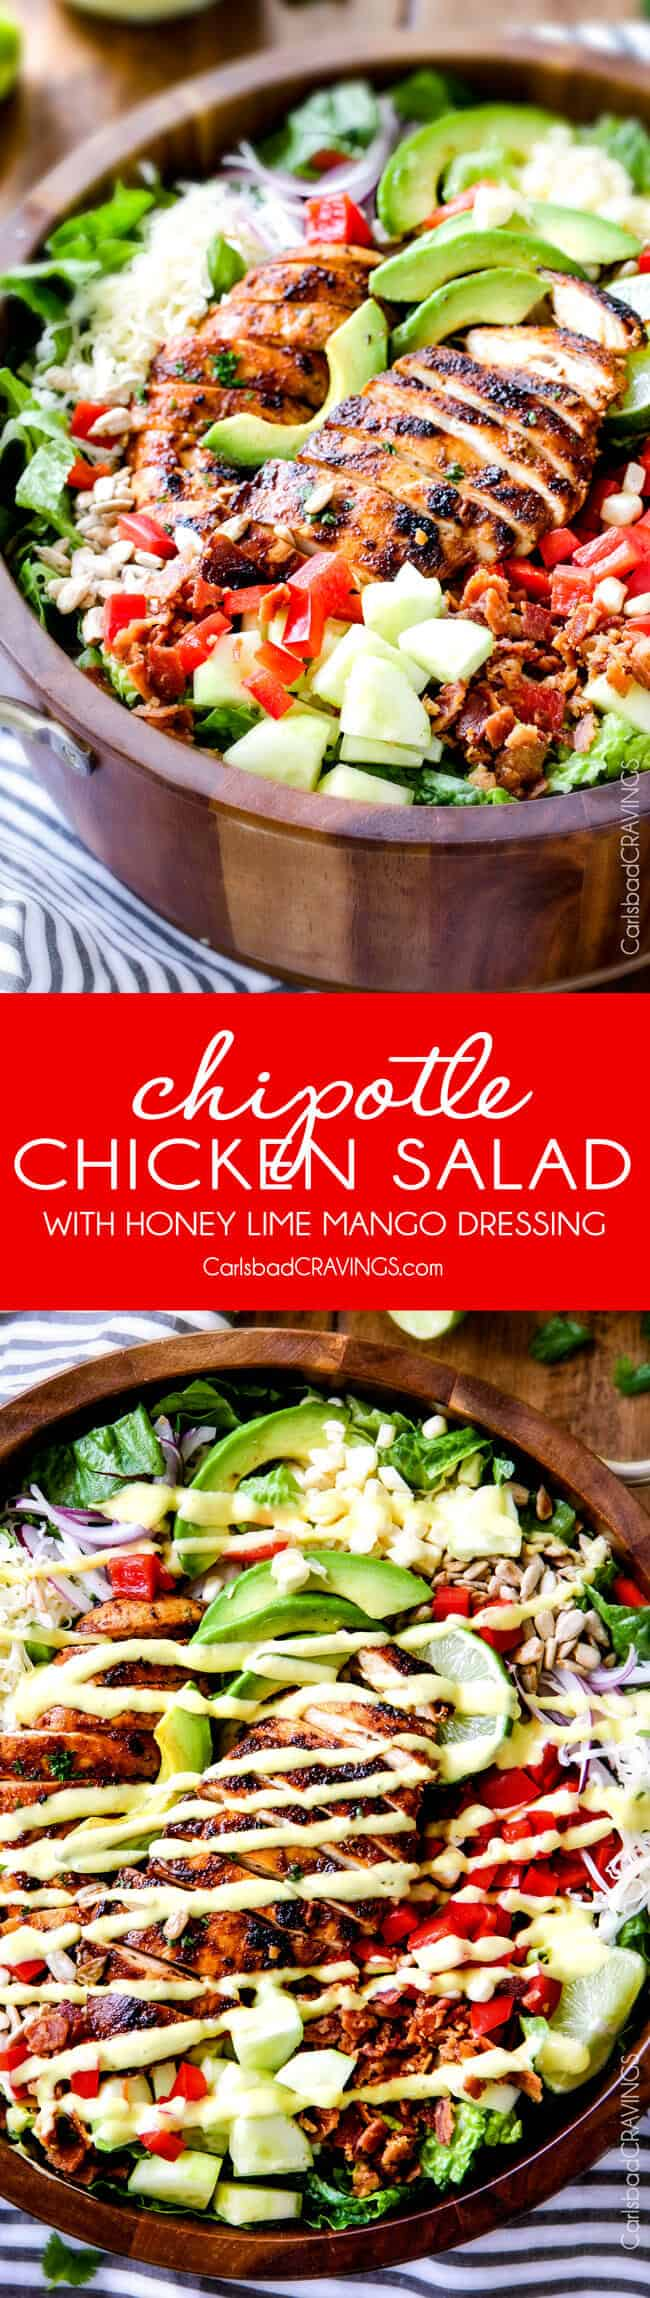 Chipotle Chicken Salad with Honey Mango Dressing – I actually CRAVE this salad its so good! The chipotle chicken is super juicy and flavorful with just the right amount of kick and the mango dressing is so sweet, tangy and refreshing and I love the addition of Monterrey Jack Cheese and sunflower seeds! My friends always ask me to make this for them!